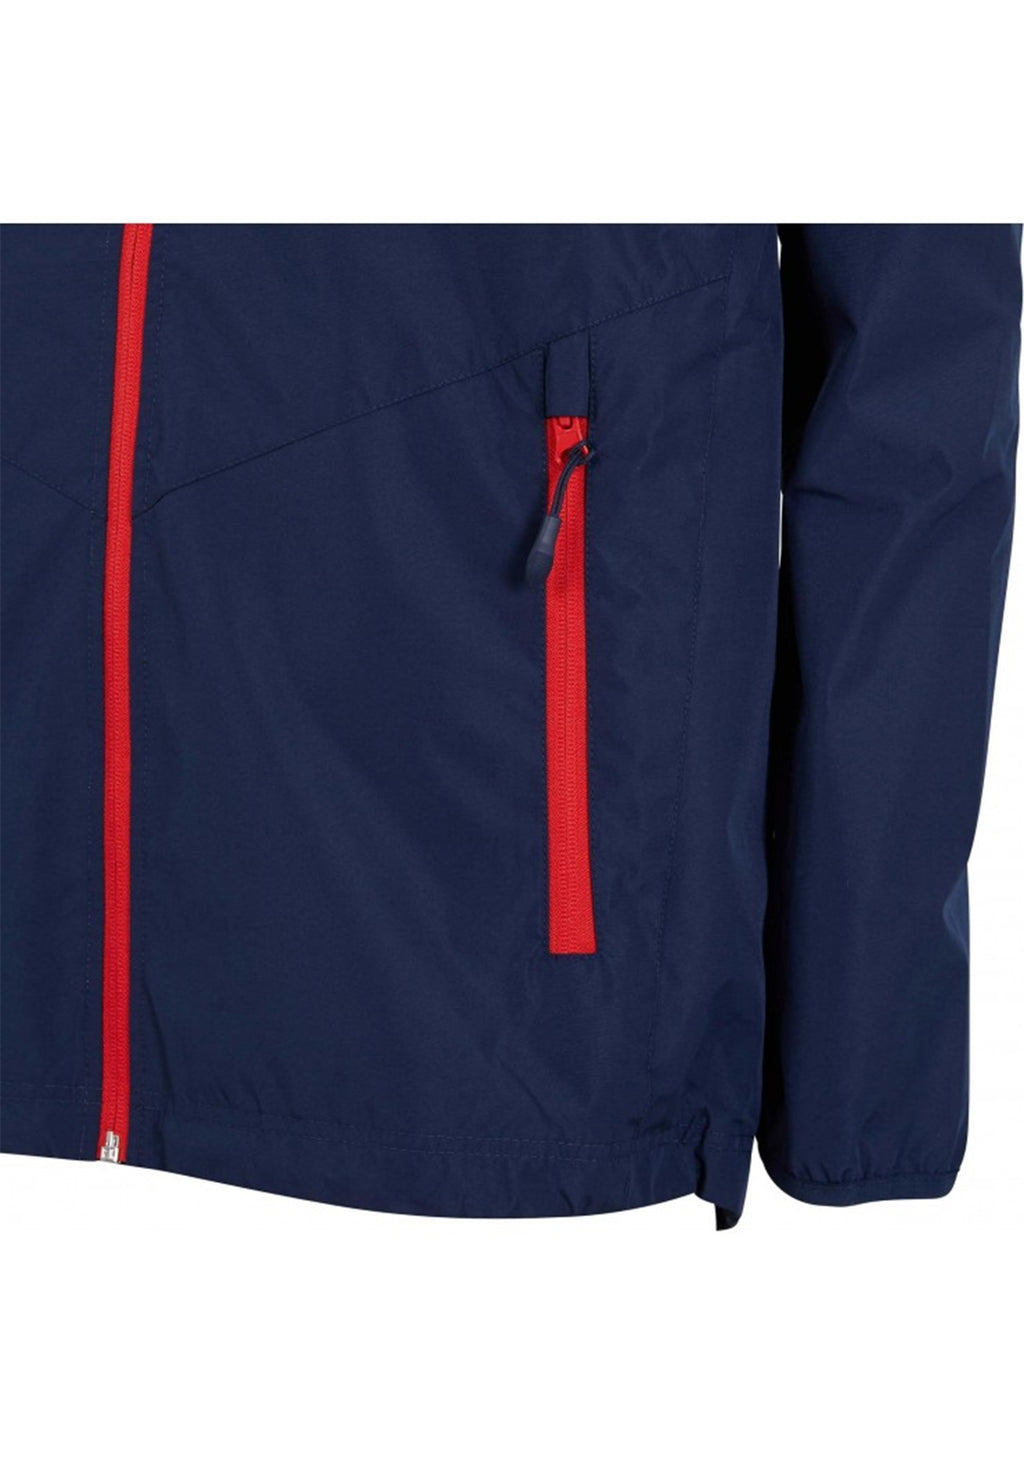 ISC ADELAIDE CROWS WET WEATHER JACKET MENS <br> AC18JKT01M